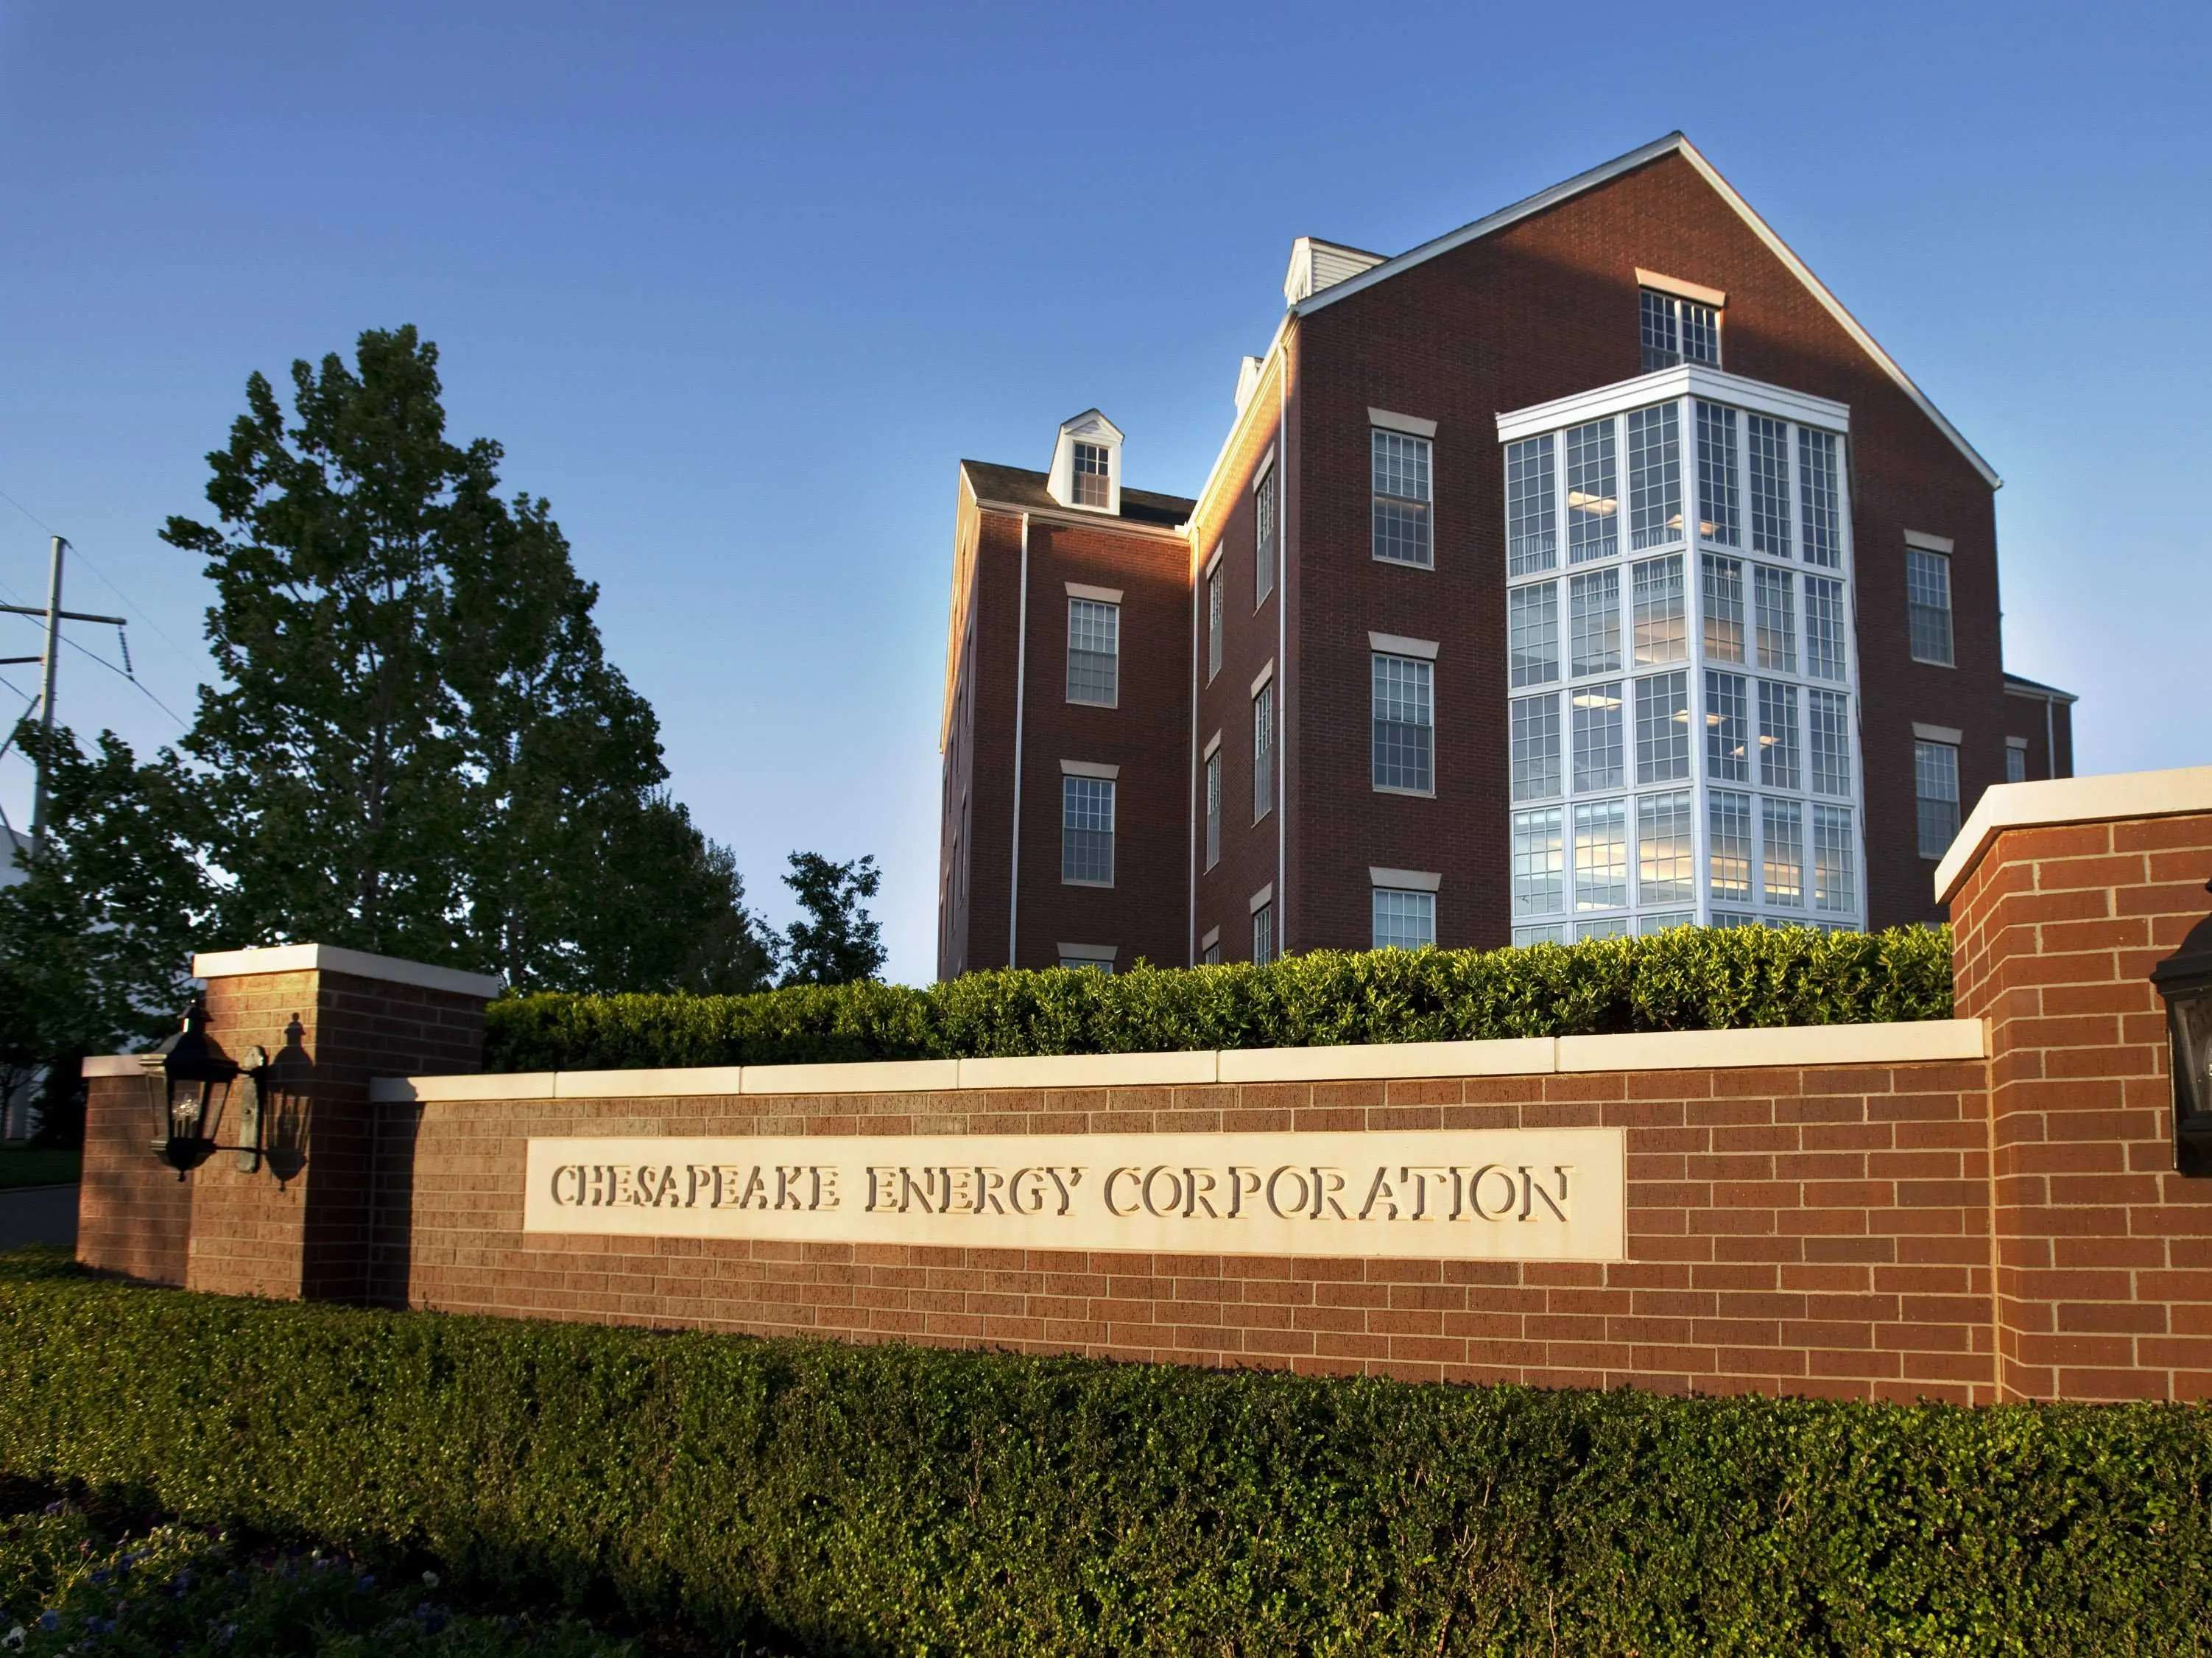 39. Chesapeake Energy is held by 15 funds